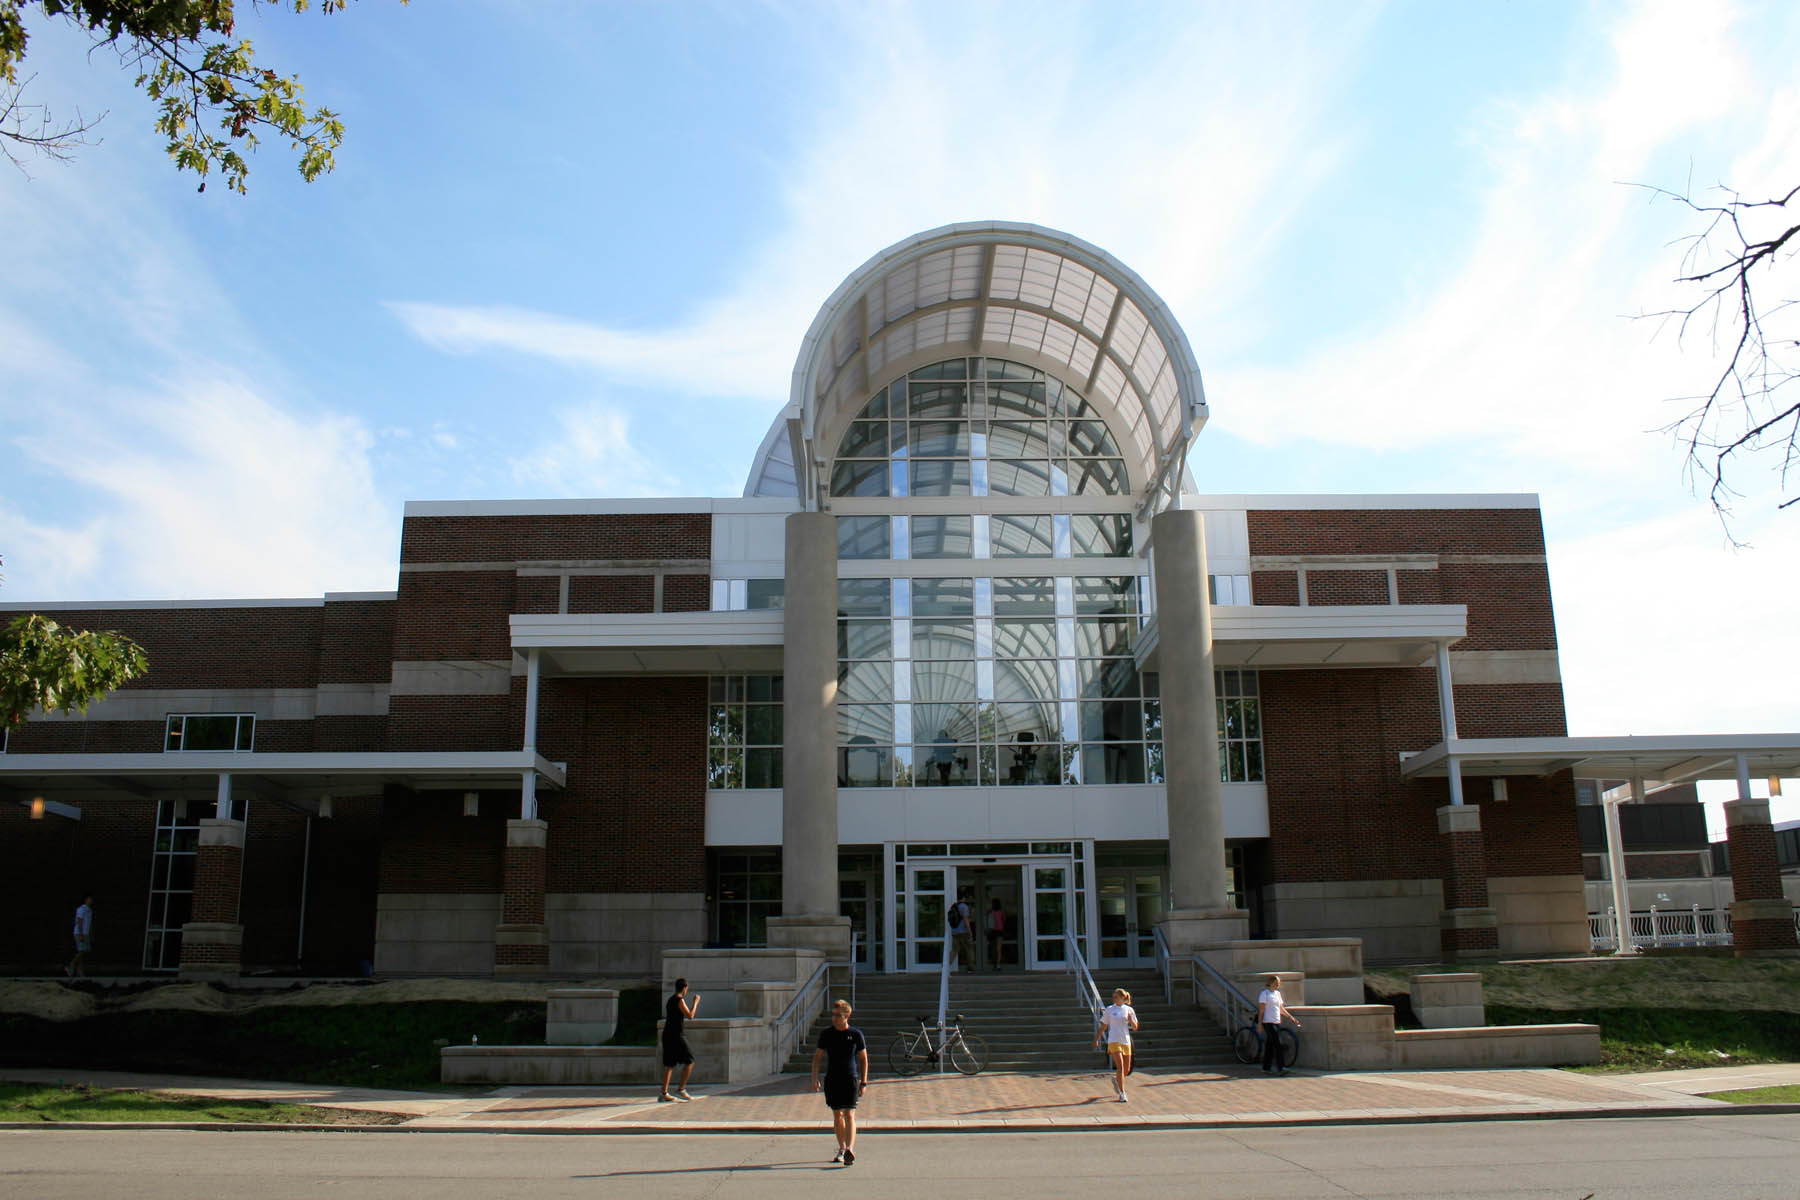 image for ARC (Activities and Recreation Center)